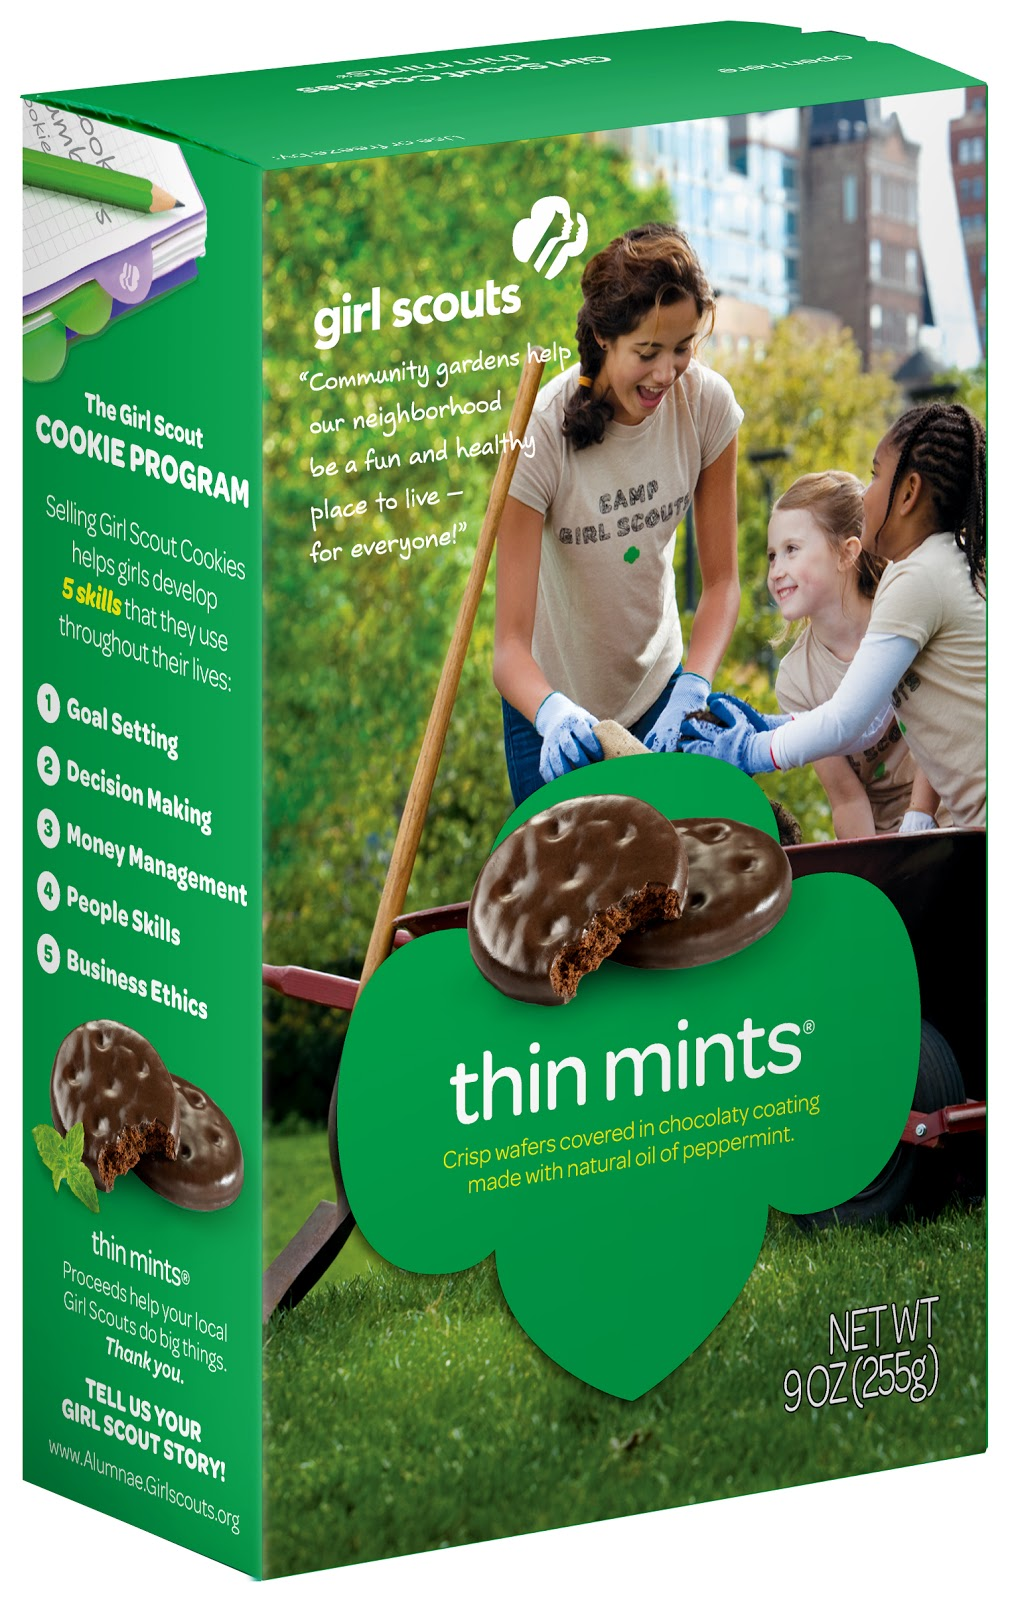 Liar Scouts of America: The Truth About Thin Mints | Beyond Reason